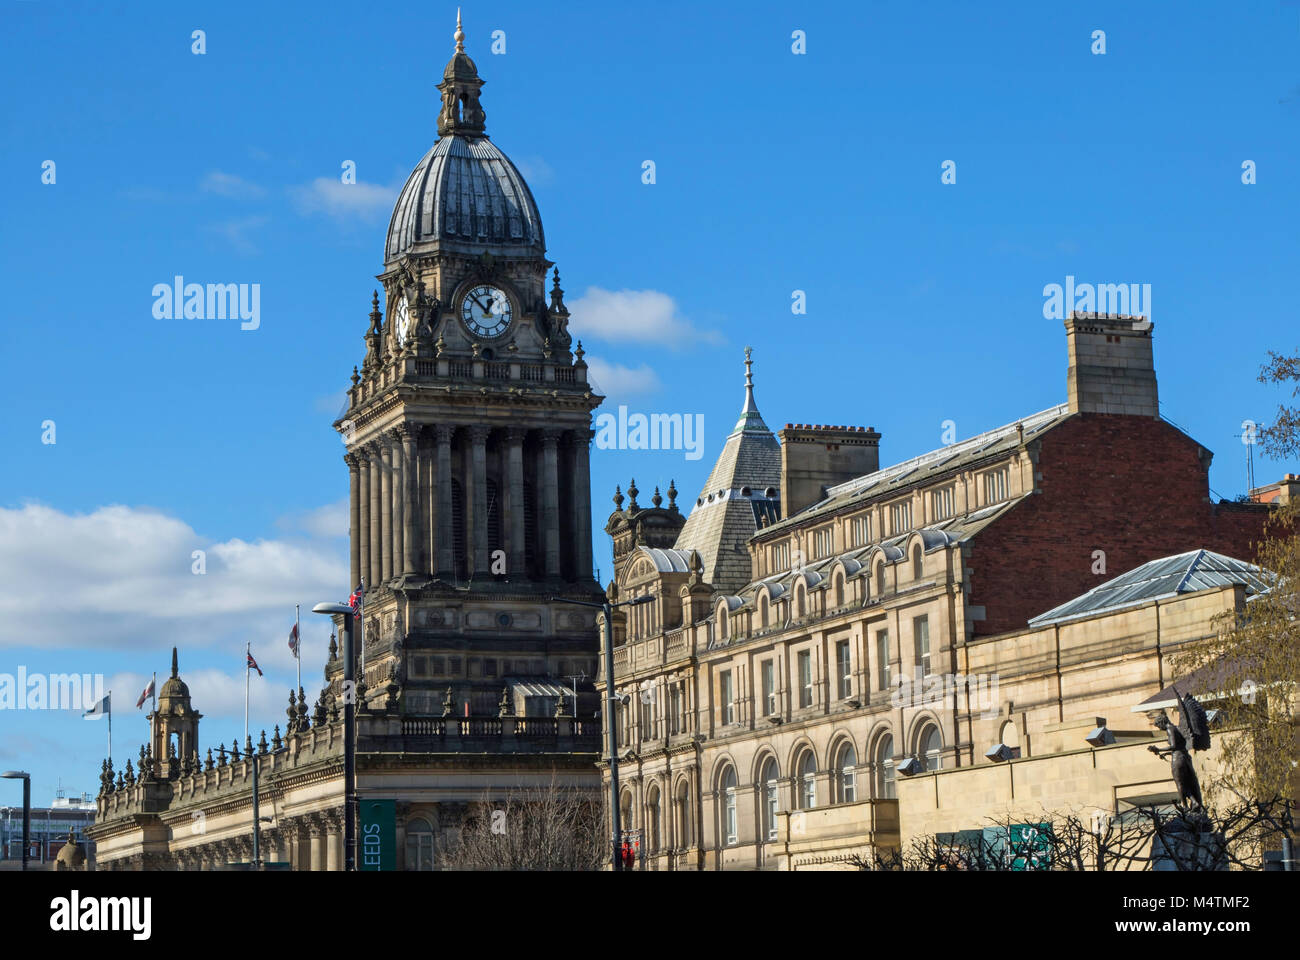 Leeds Town Hall on a sunny spring morning,West Yorkshire,England,UK. - Stock Image